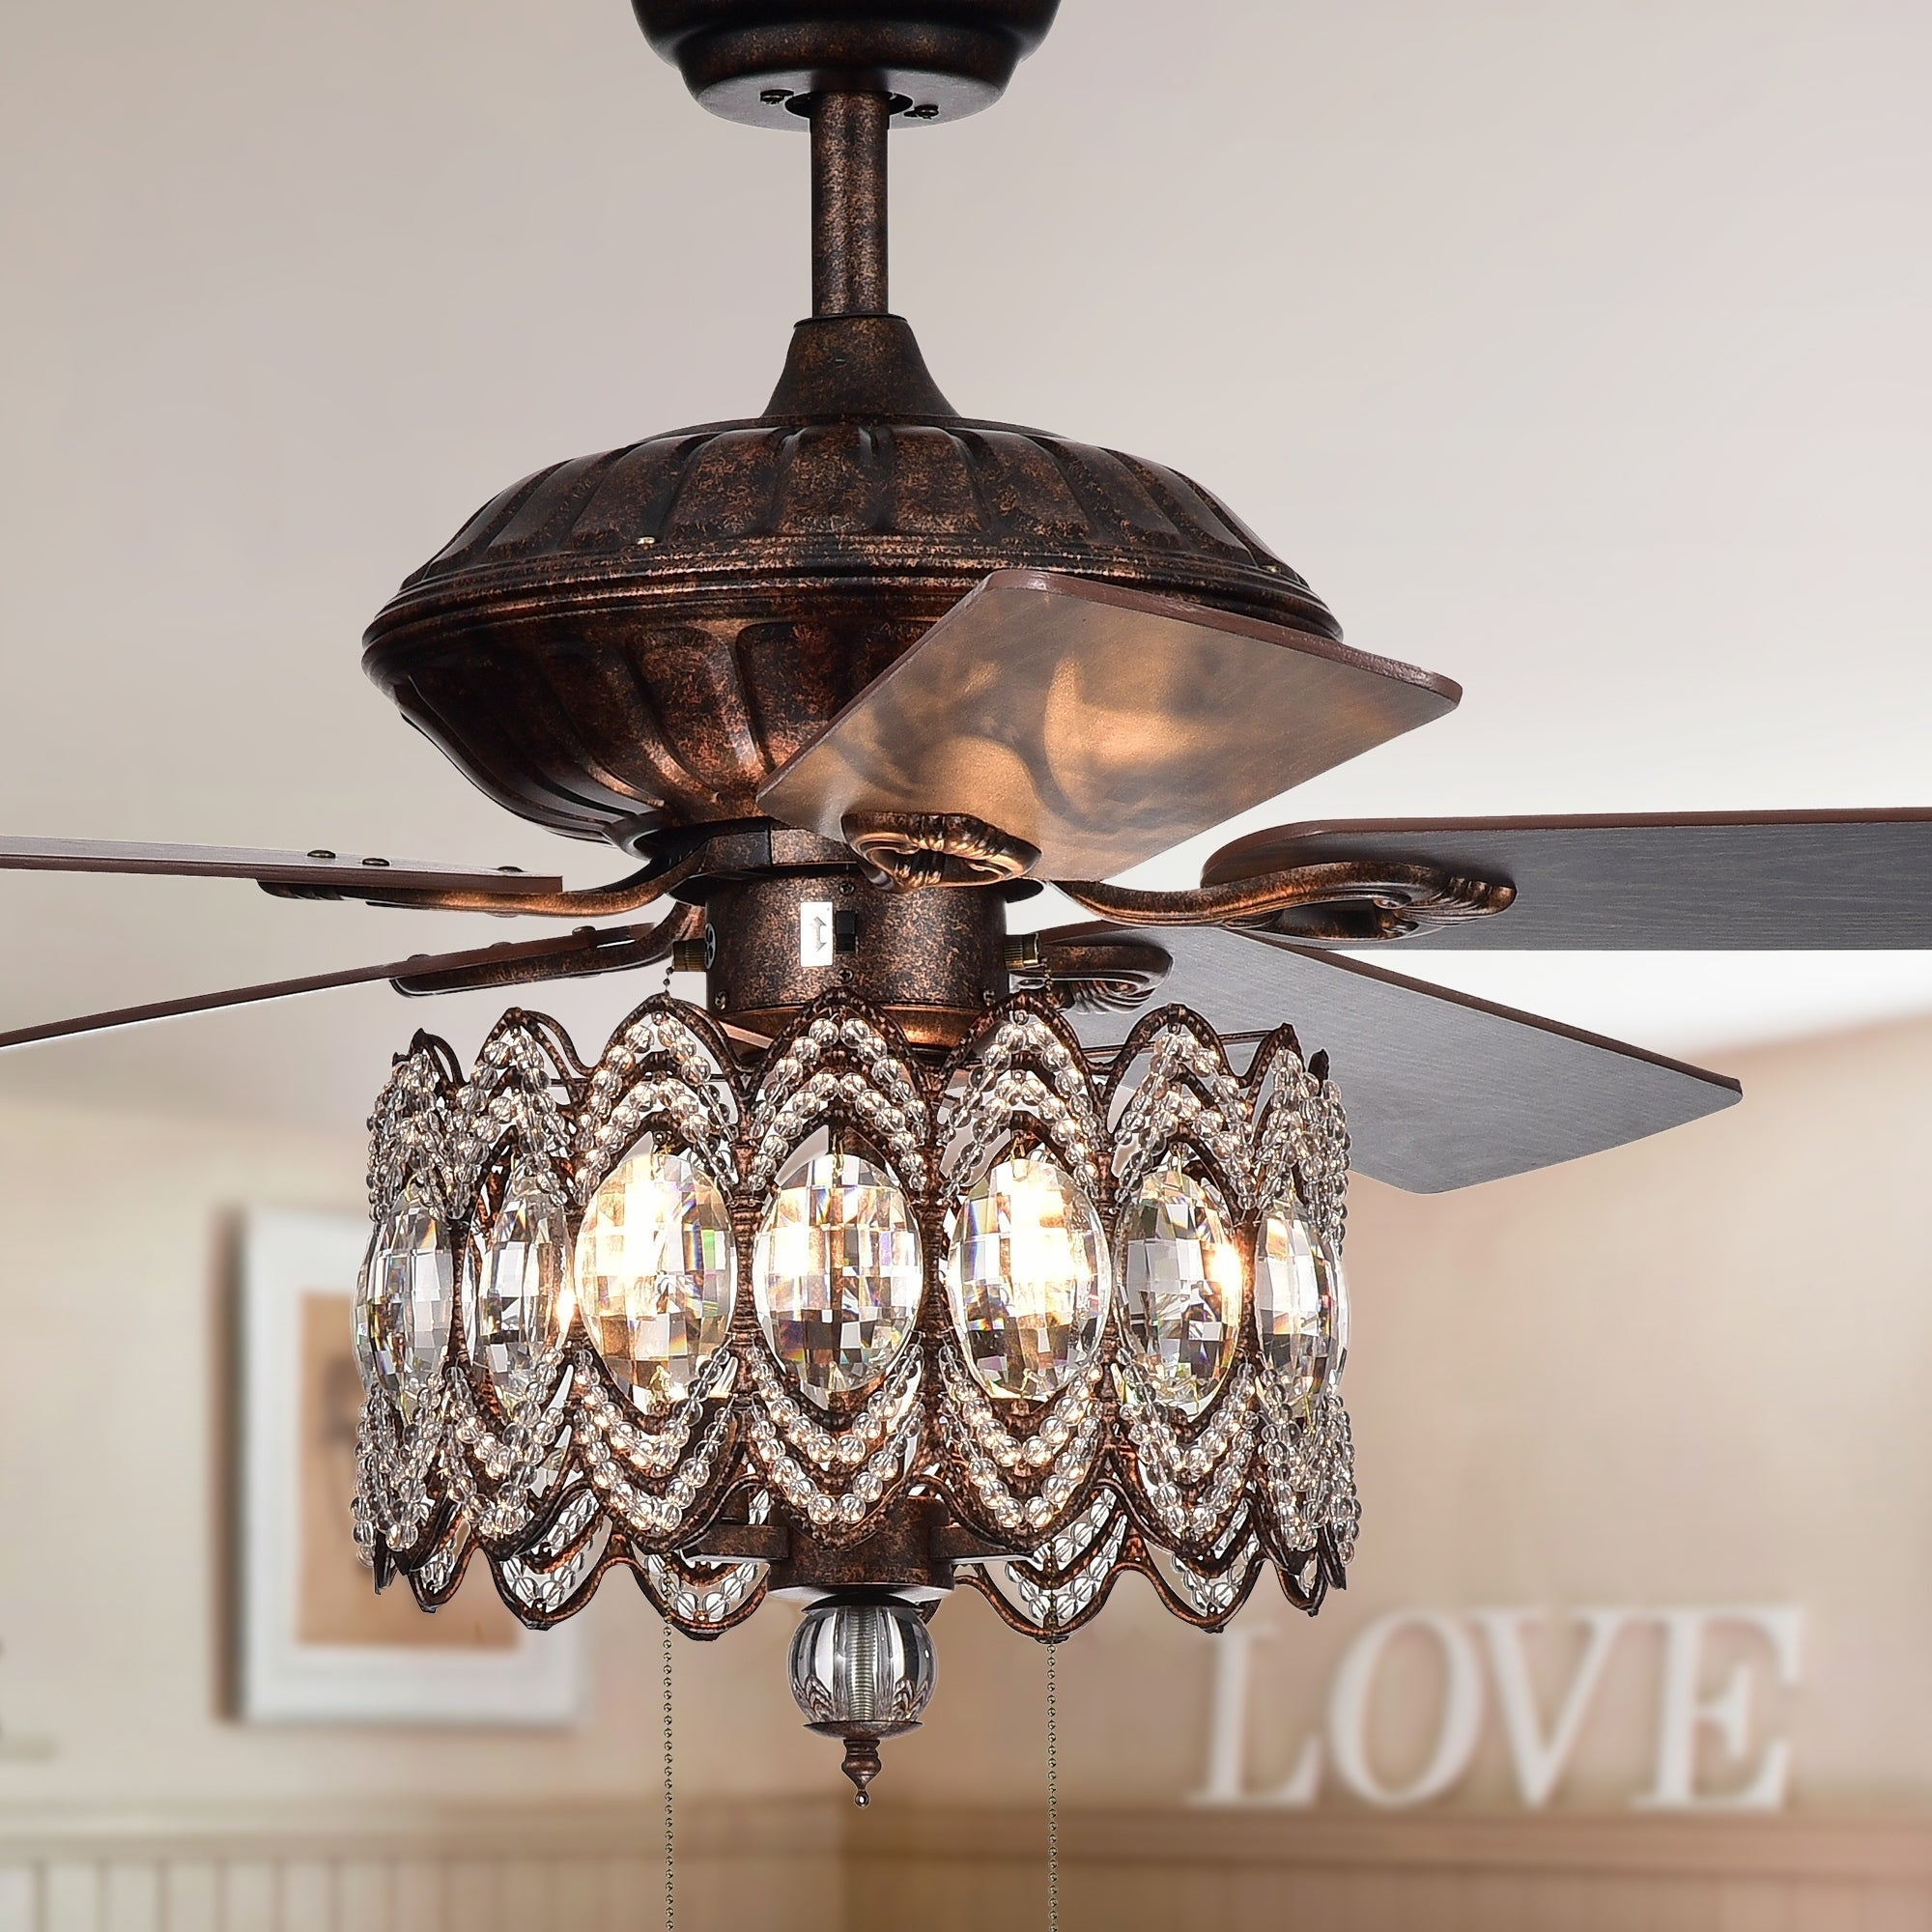 Chandelier Fan: Mariposa 52-inch Rustic Bronze Chandelier Ceiling Fan Wtih